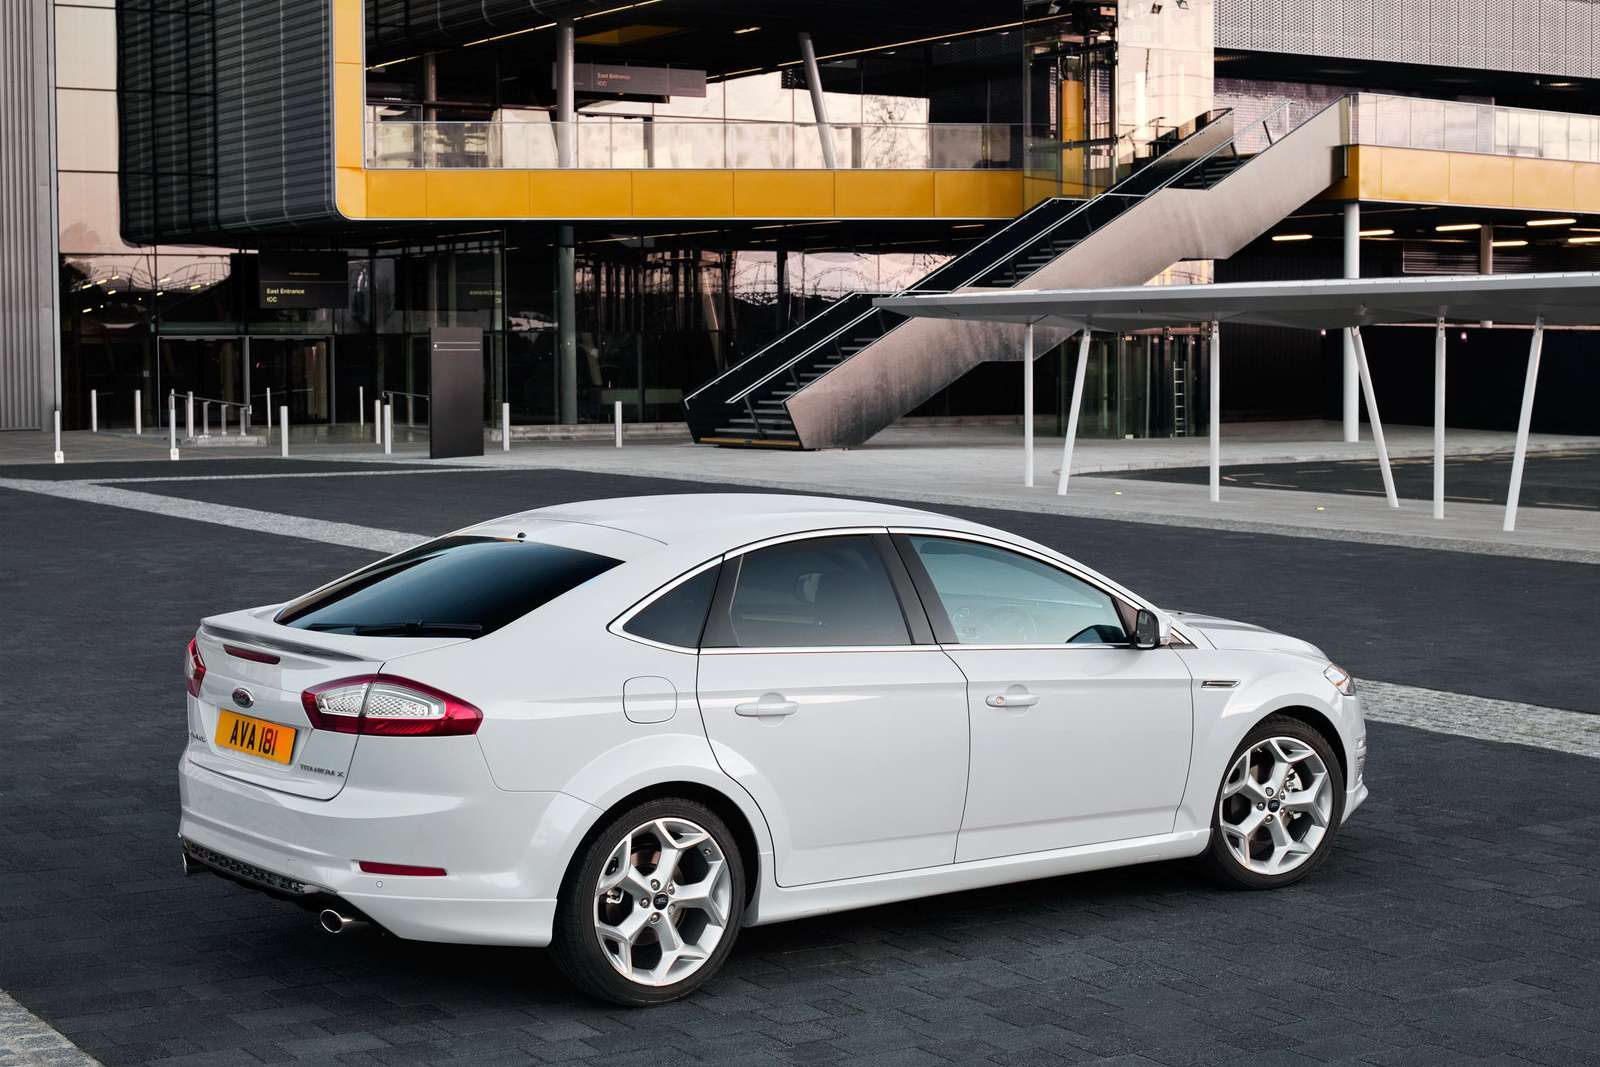 Ford Mondeo lifting czerwiec 2010